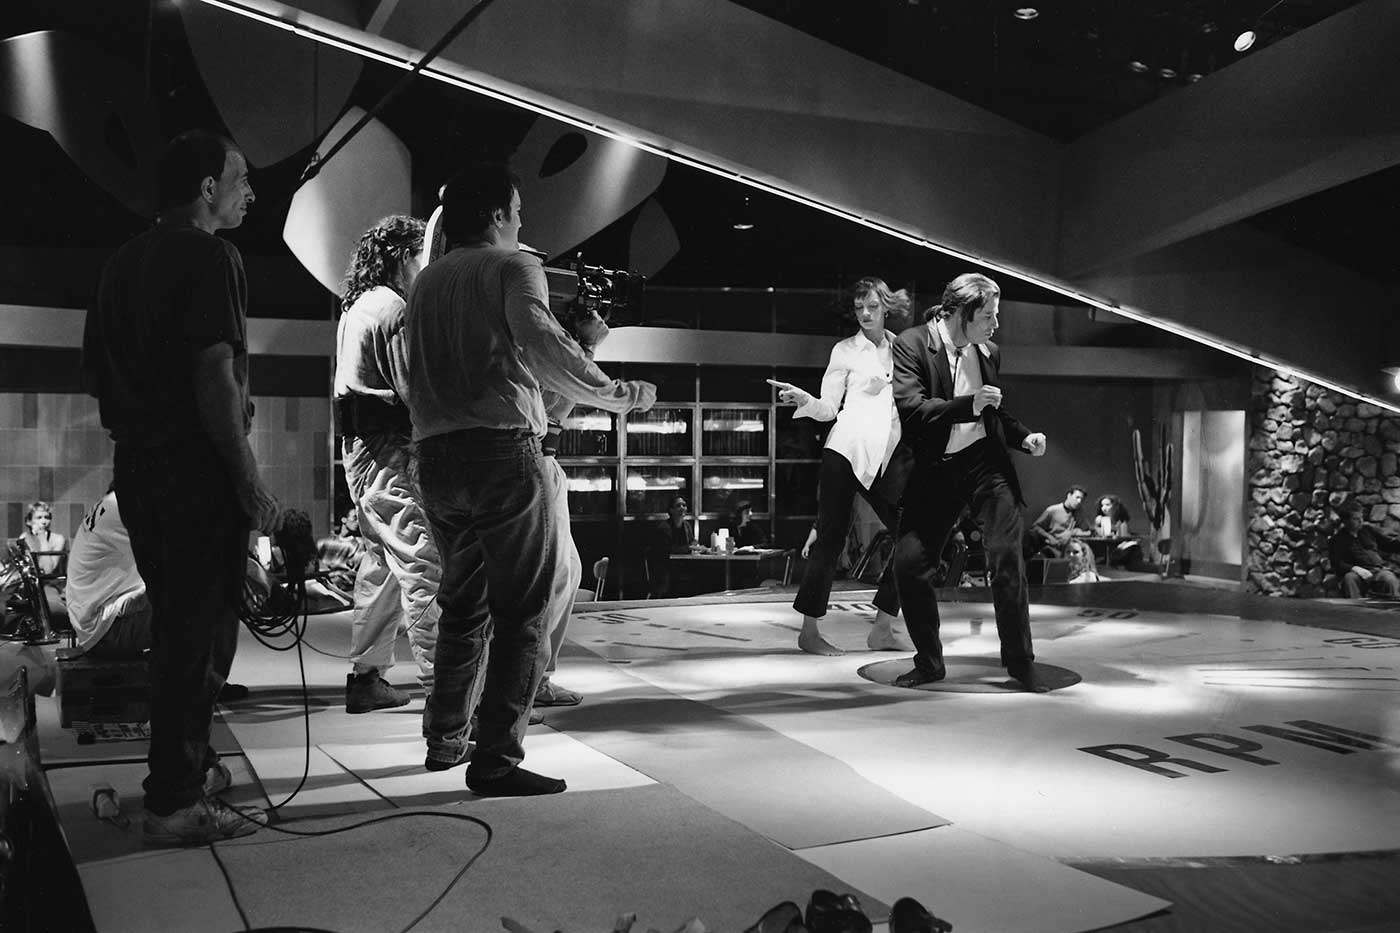 Oscar-nominated actors Uma Thurman and John Travolta shoot their famous dance scene at Jack Rabbit Slim's, with Quentin Tarantino twisting on the sidelines